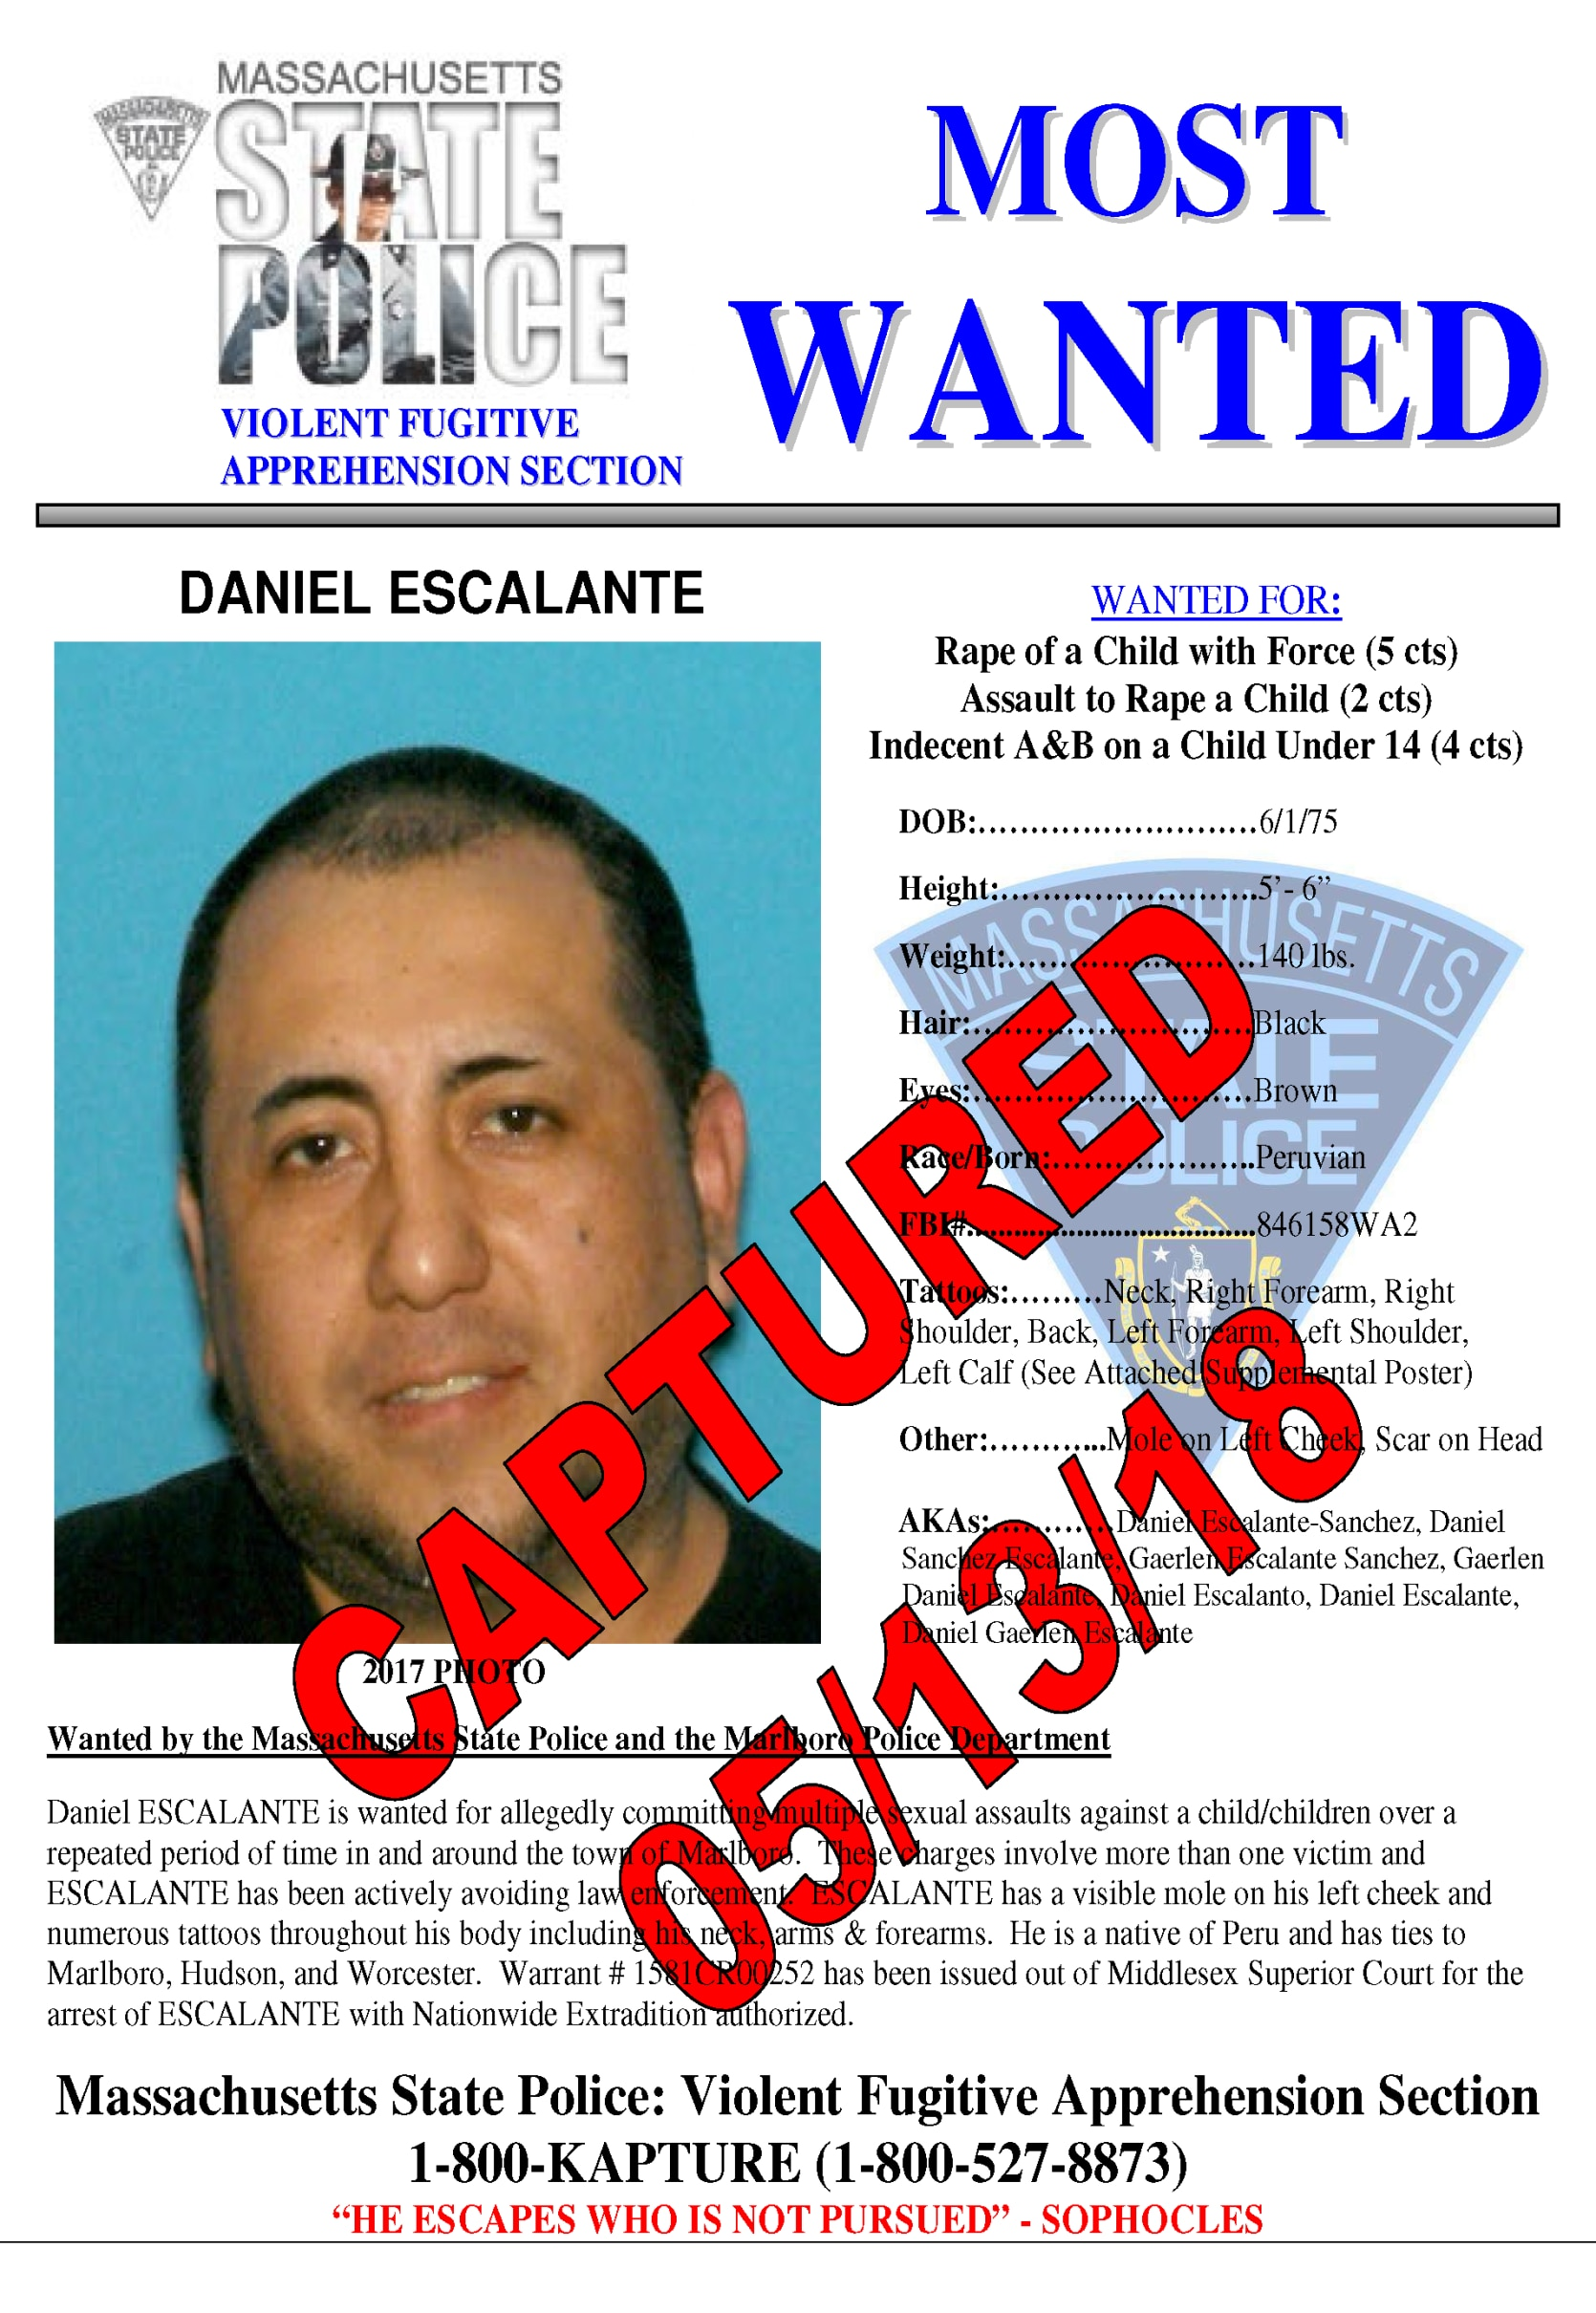 Captured Poster of Daniel Escalante Arrest